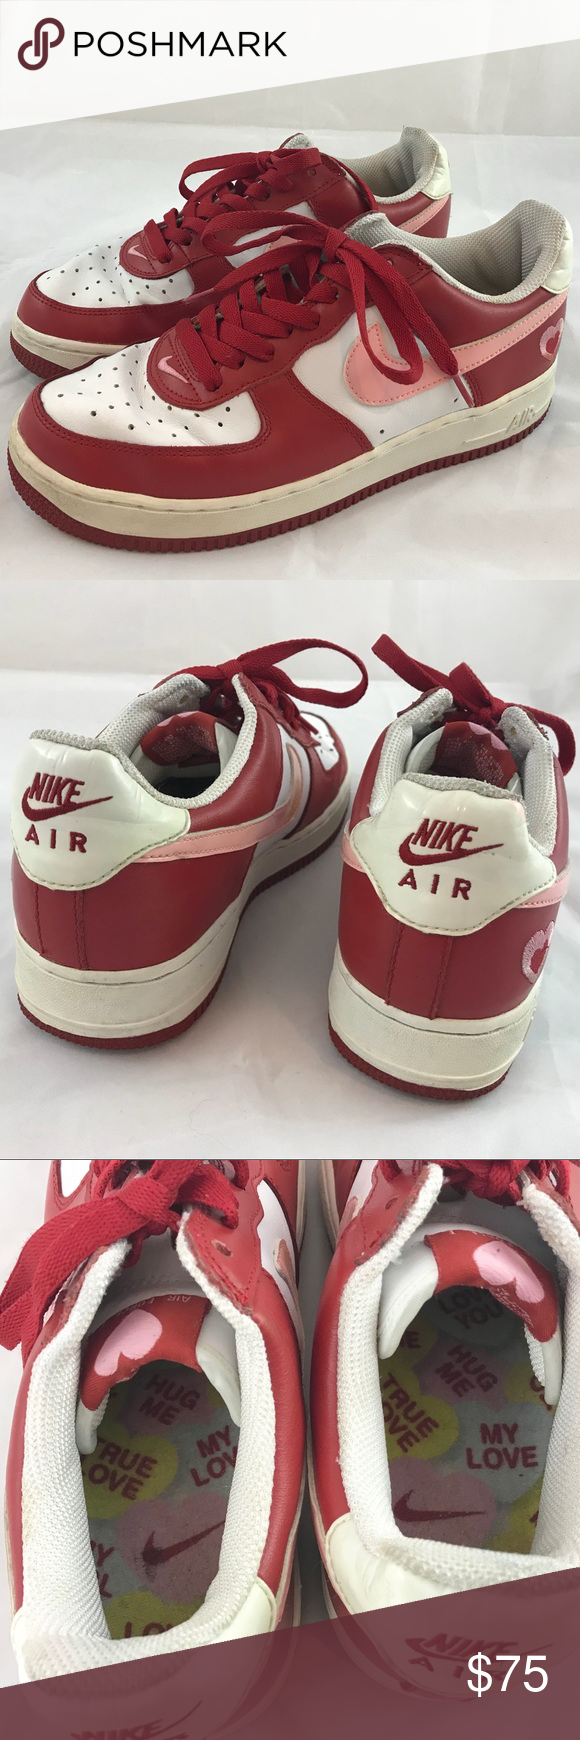 Nike Air Force 1 Low V Day White Pink Red Sz 9 Nike Low Top